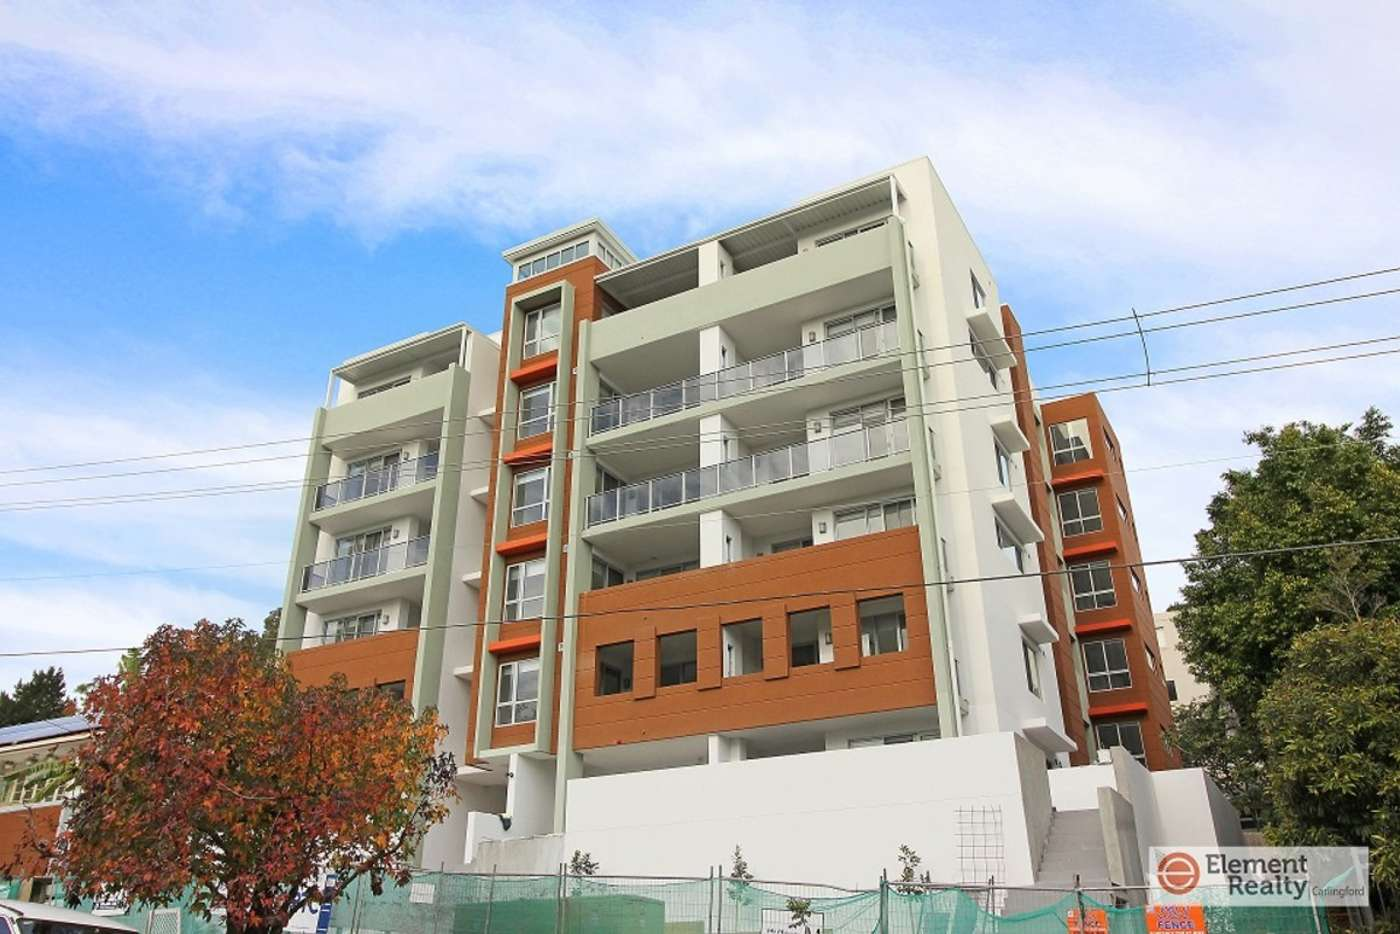 Main view of Homely apartment listing, 12/12 Post Office Street, Carlingford NSW 2118